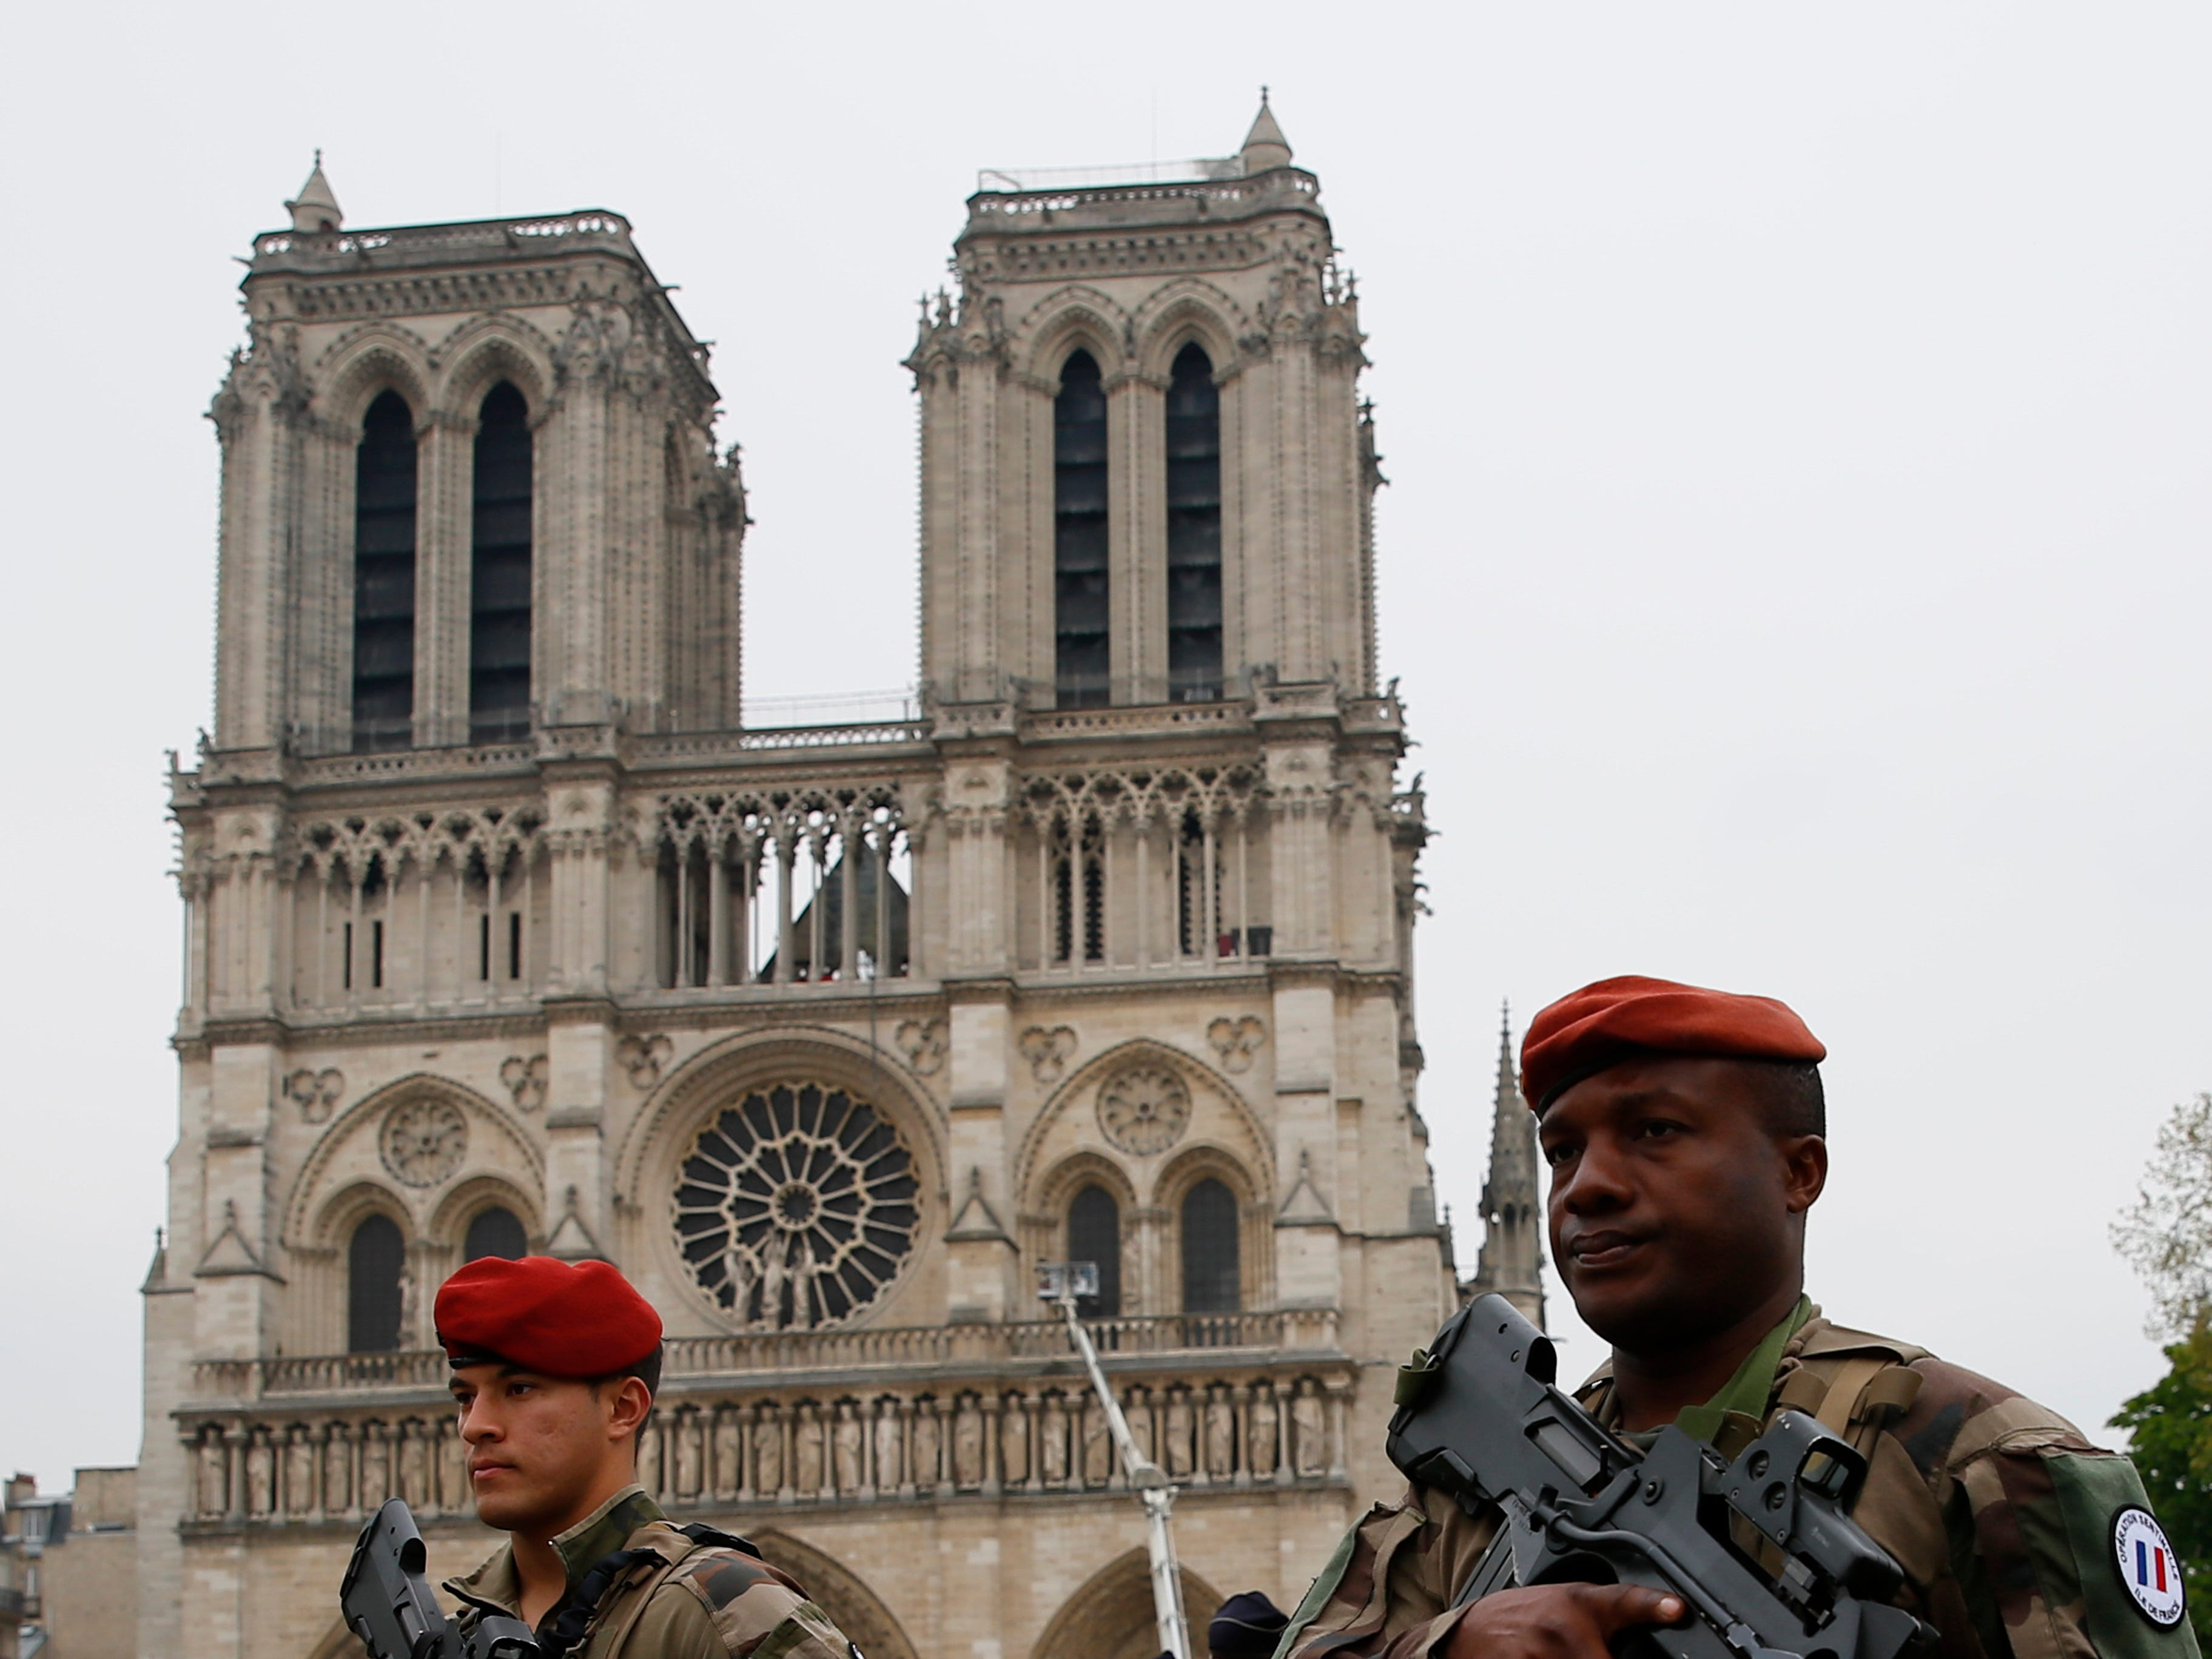 Soldiers patrol in front of Notre Dame cathedral Tuesday April 16, 2019 in Paris. Firefighters declared success Tuesday in a more than 12-hour battle to extinguish an inferno engulfing Paris' iconic Notre Dame cathedral that claimed its spire and roof, but spared its bell towers. (AP Photo/Francois Mori)